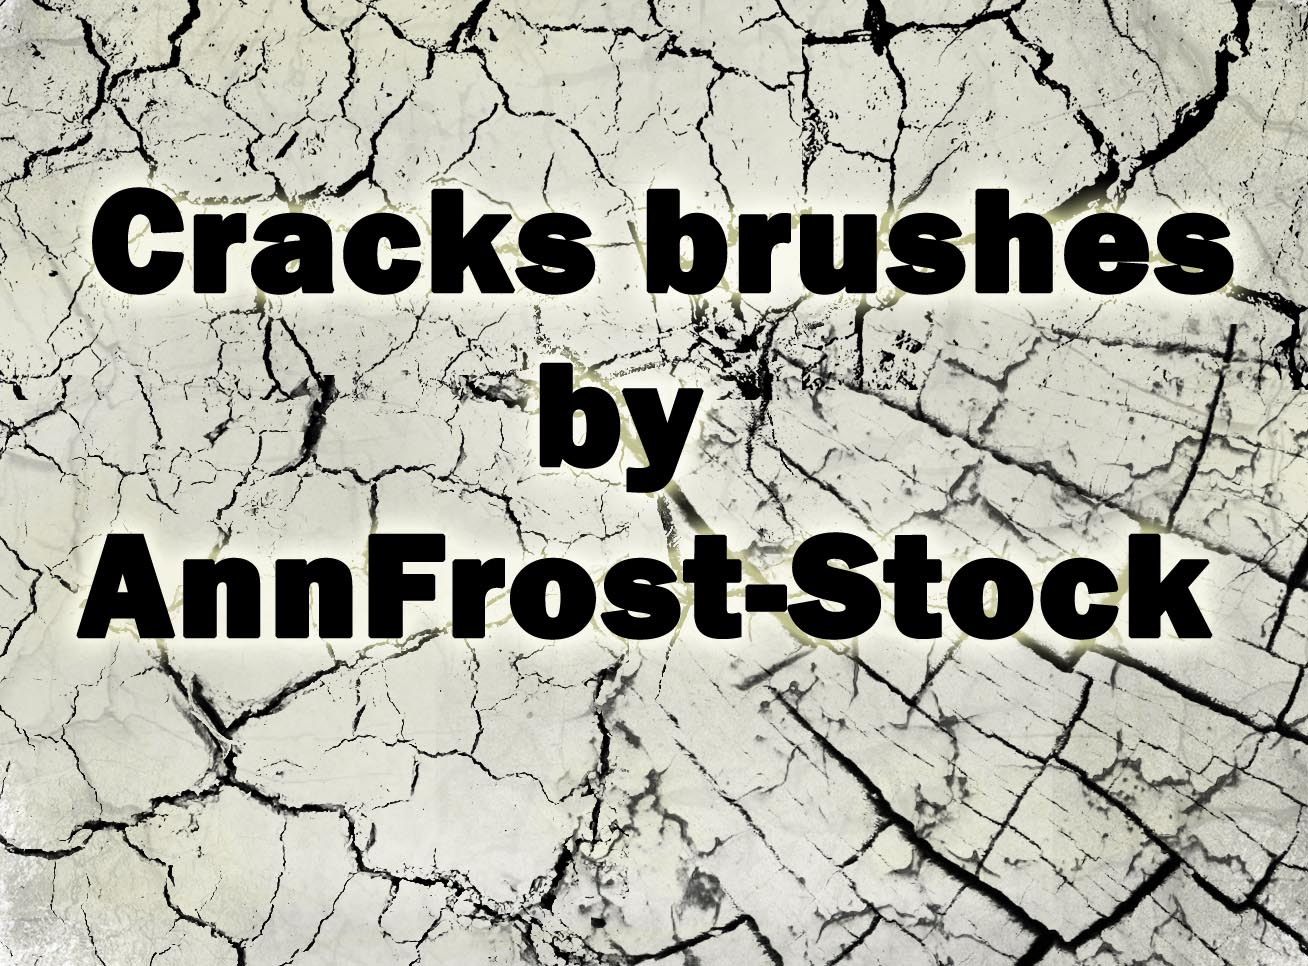 Cracks brush